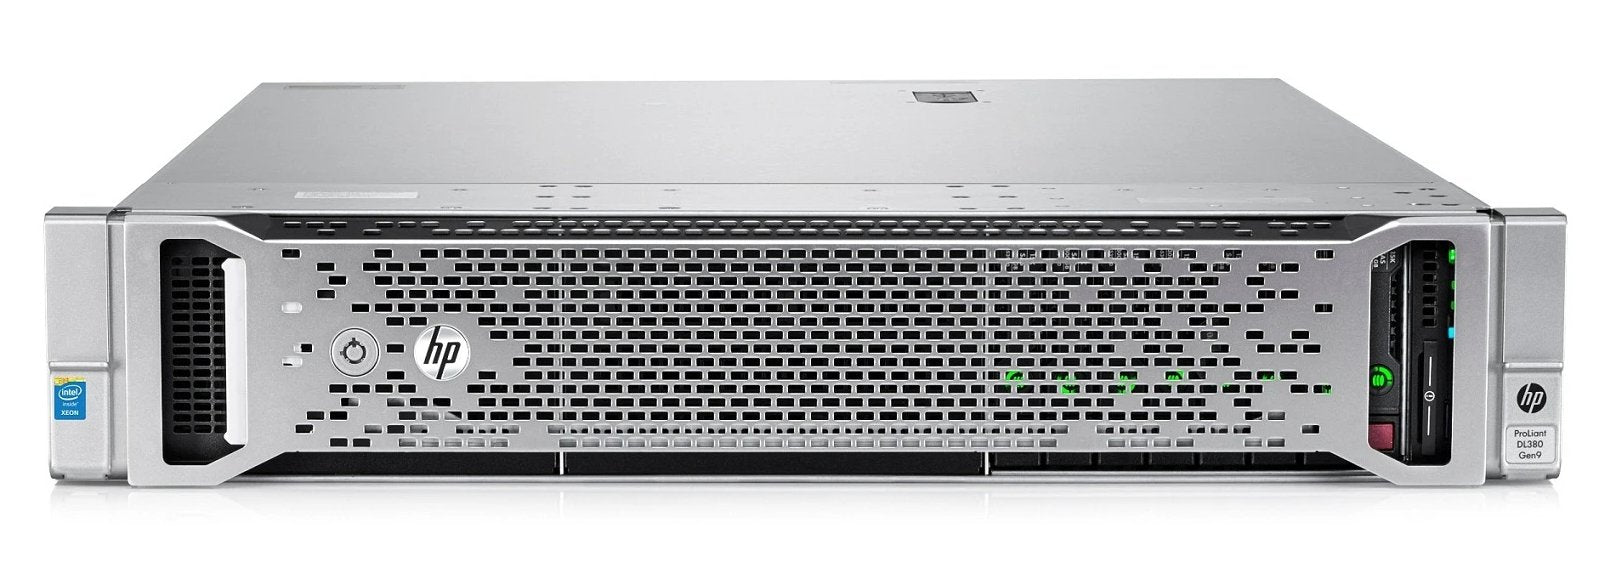 HPE ProLiant DL380 Gen9 CTO Server